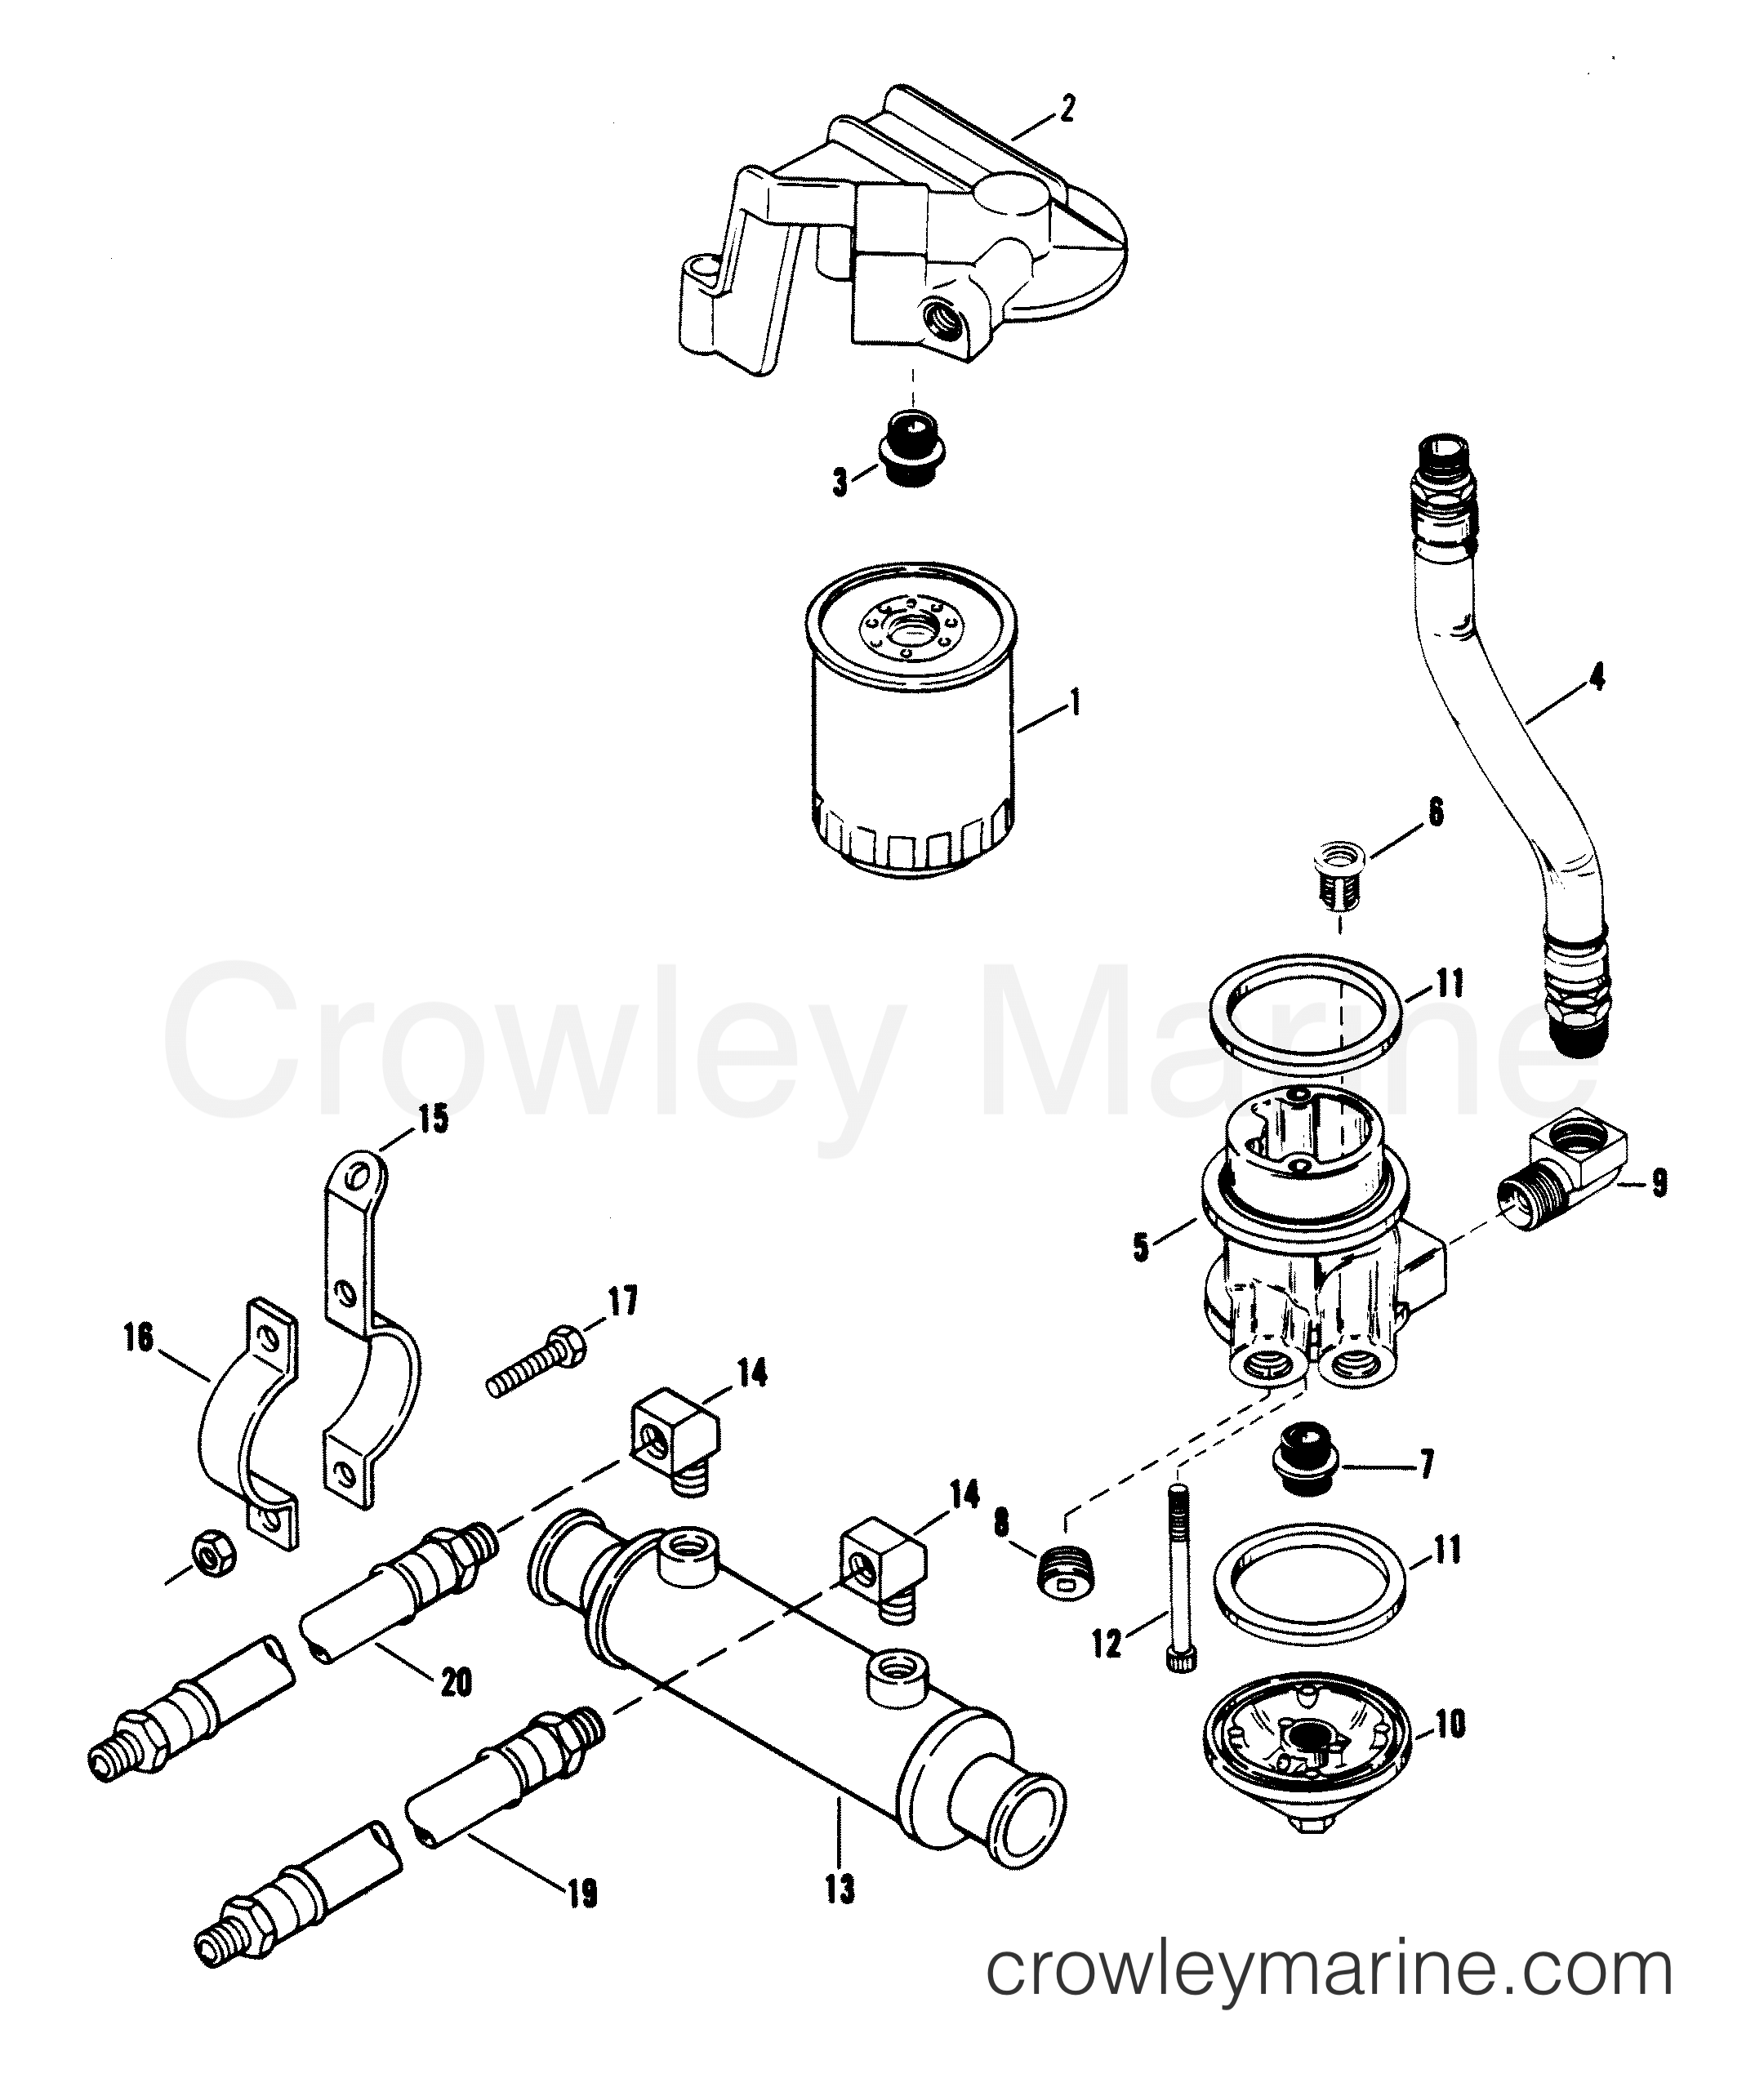 oil filter and adapter